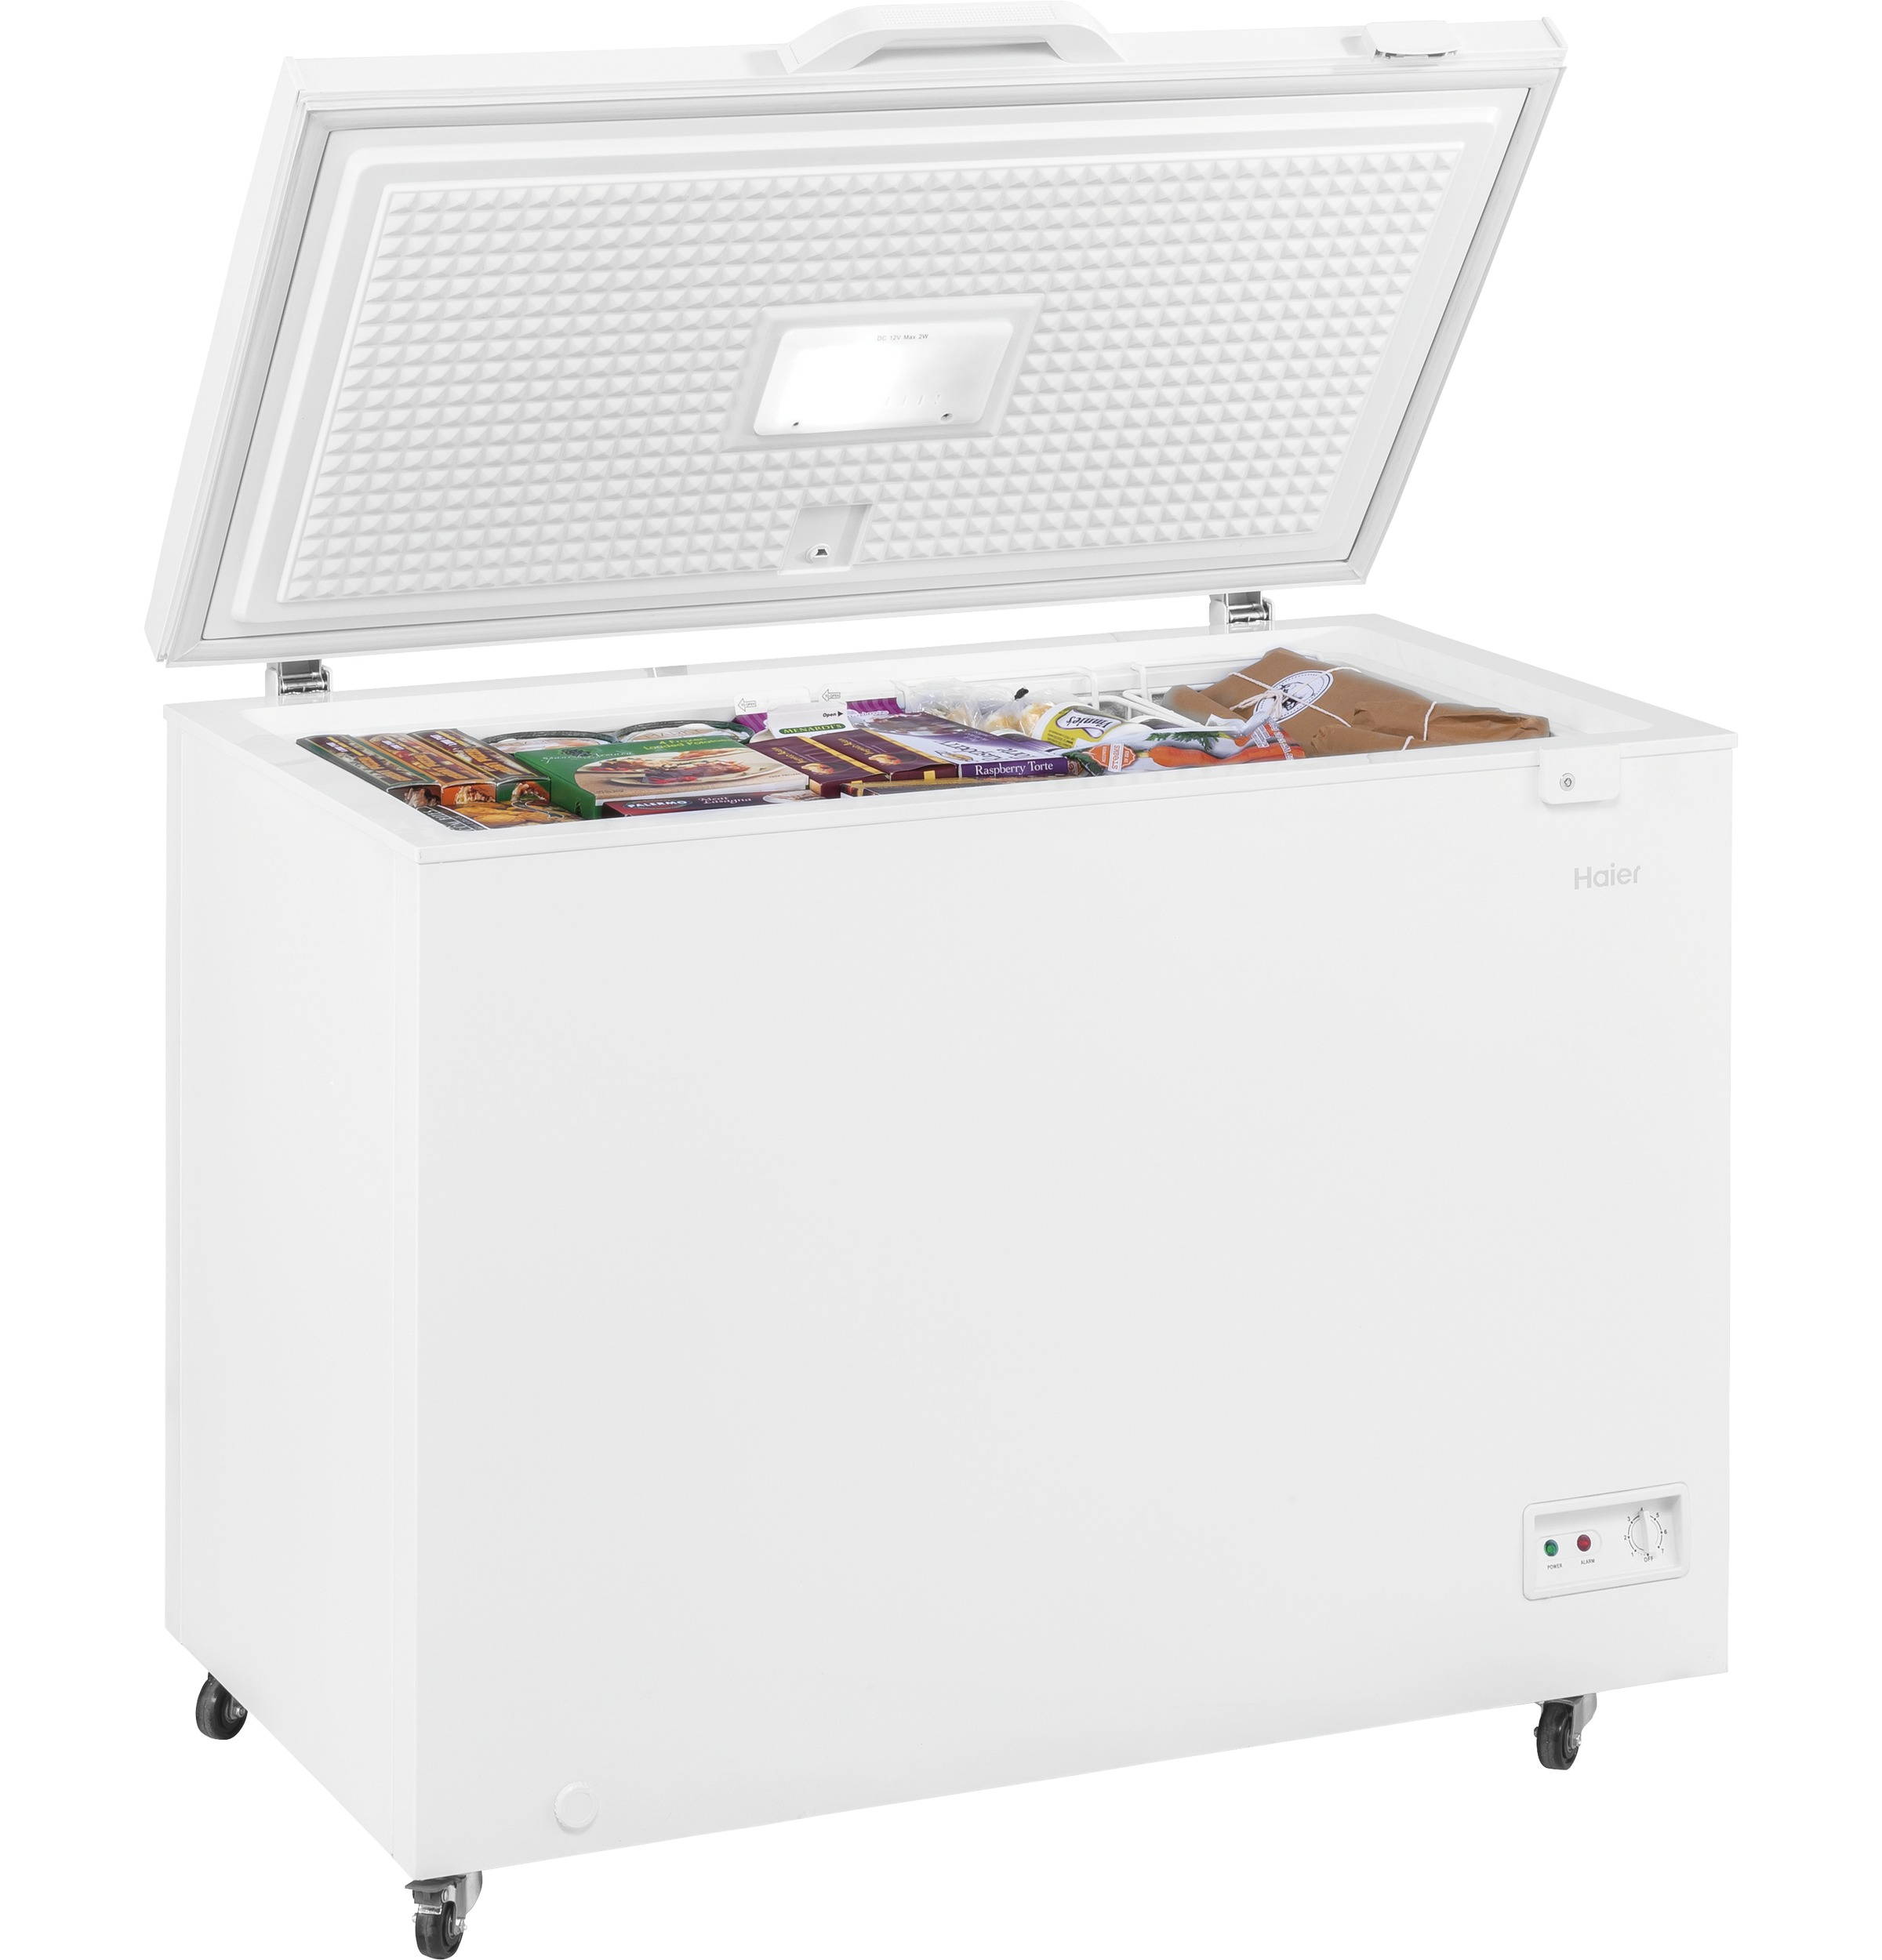 HFC9204ACW -9.2 Cu. Ft. Chest Freezer | Haier Appliances